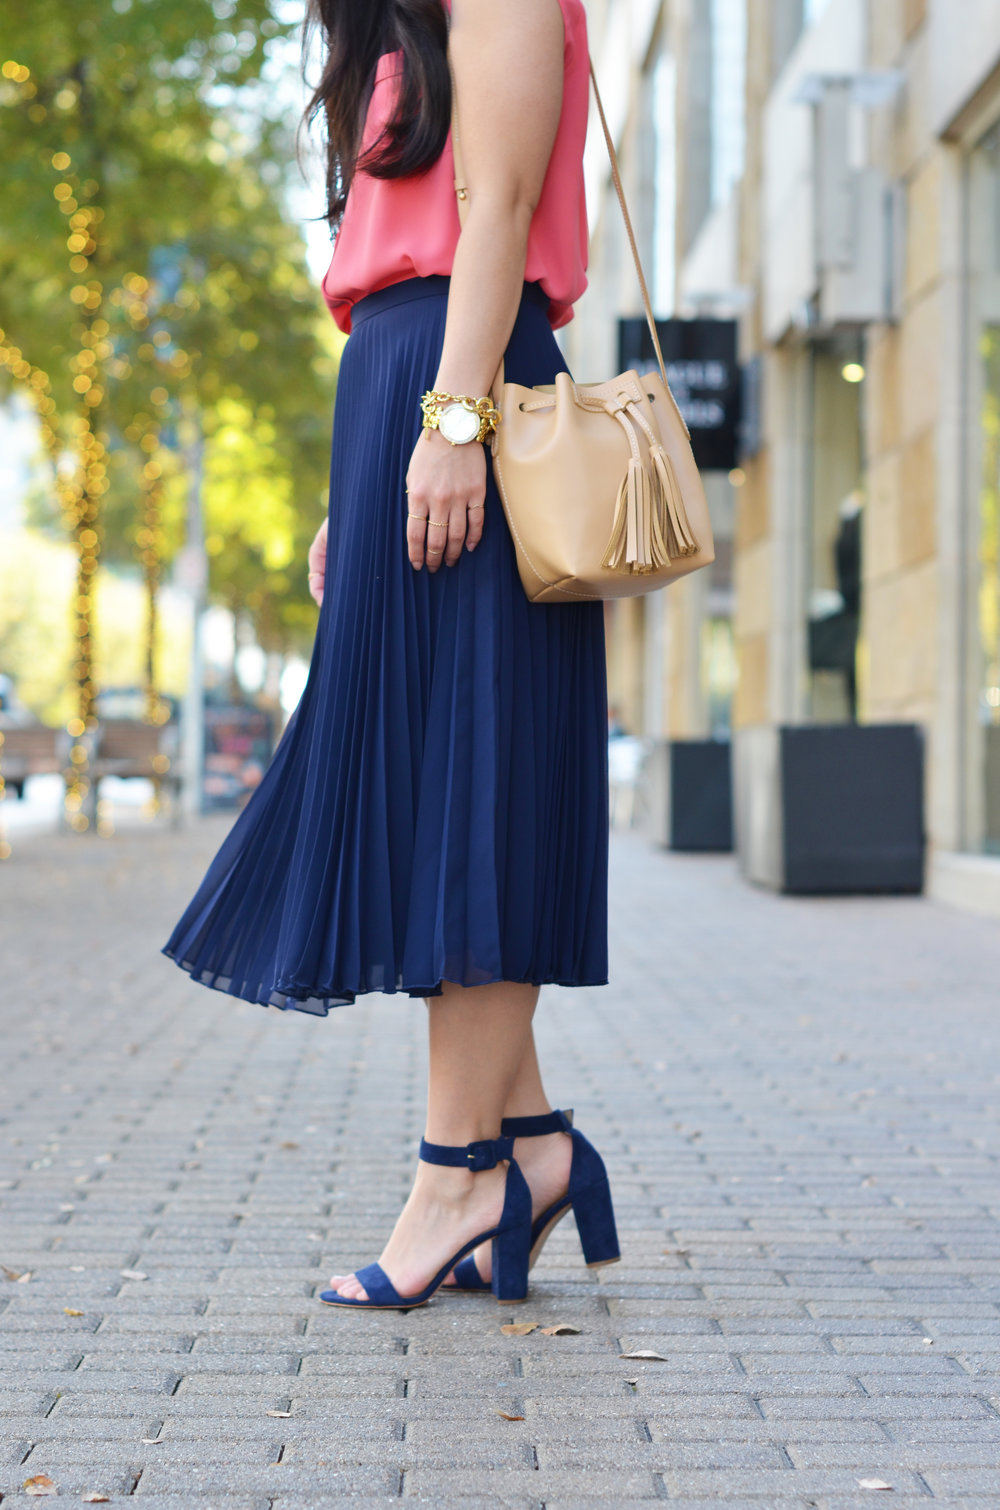 the-navy-pleated-skirt-jannadoan.com